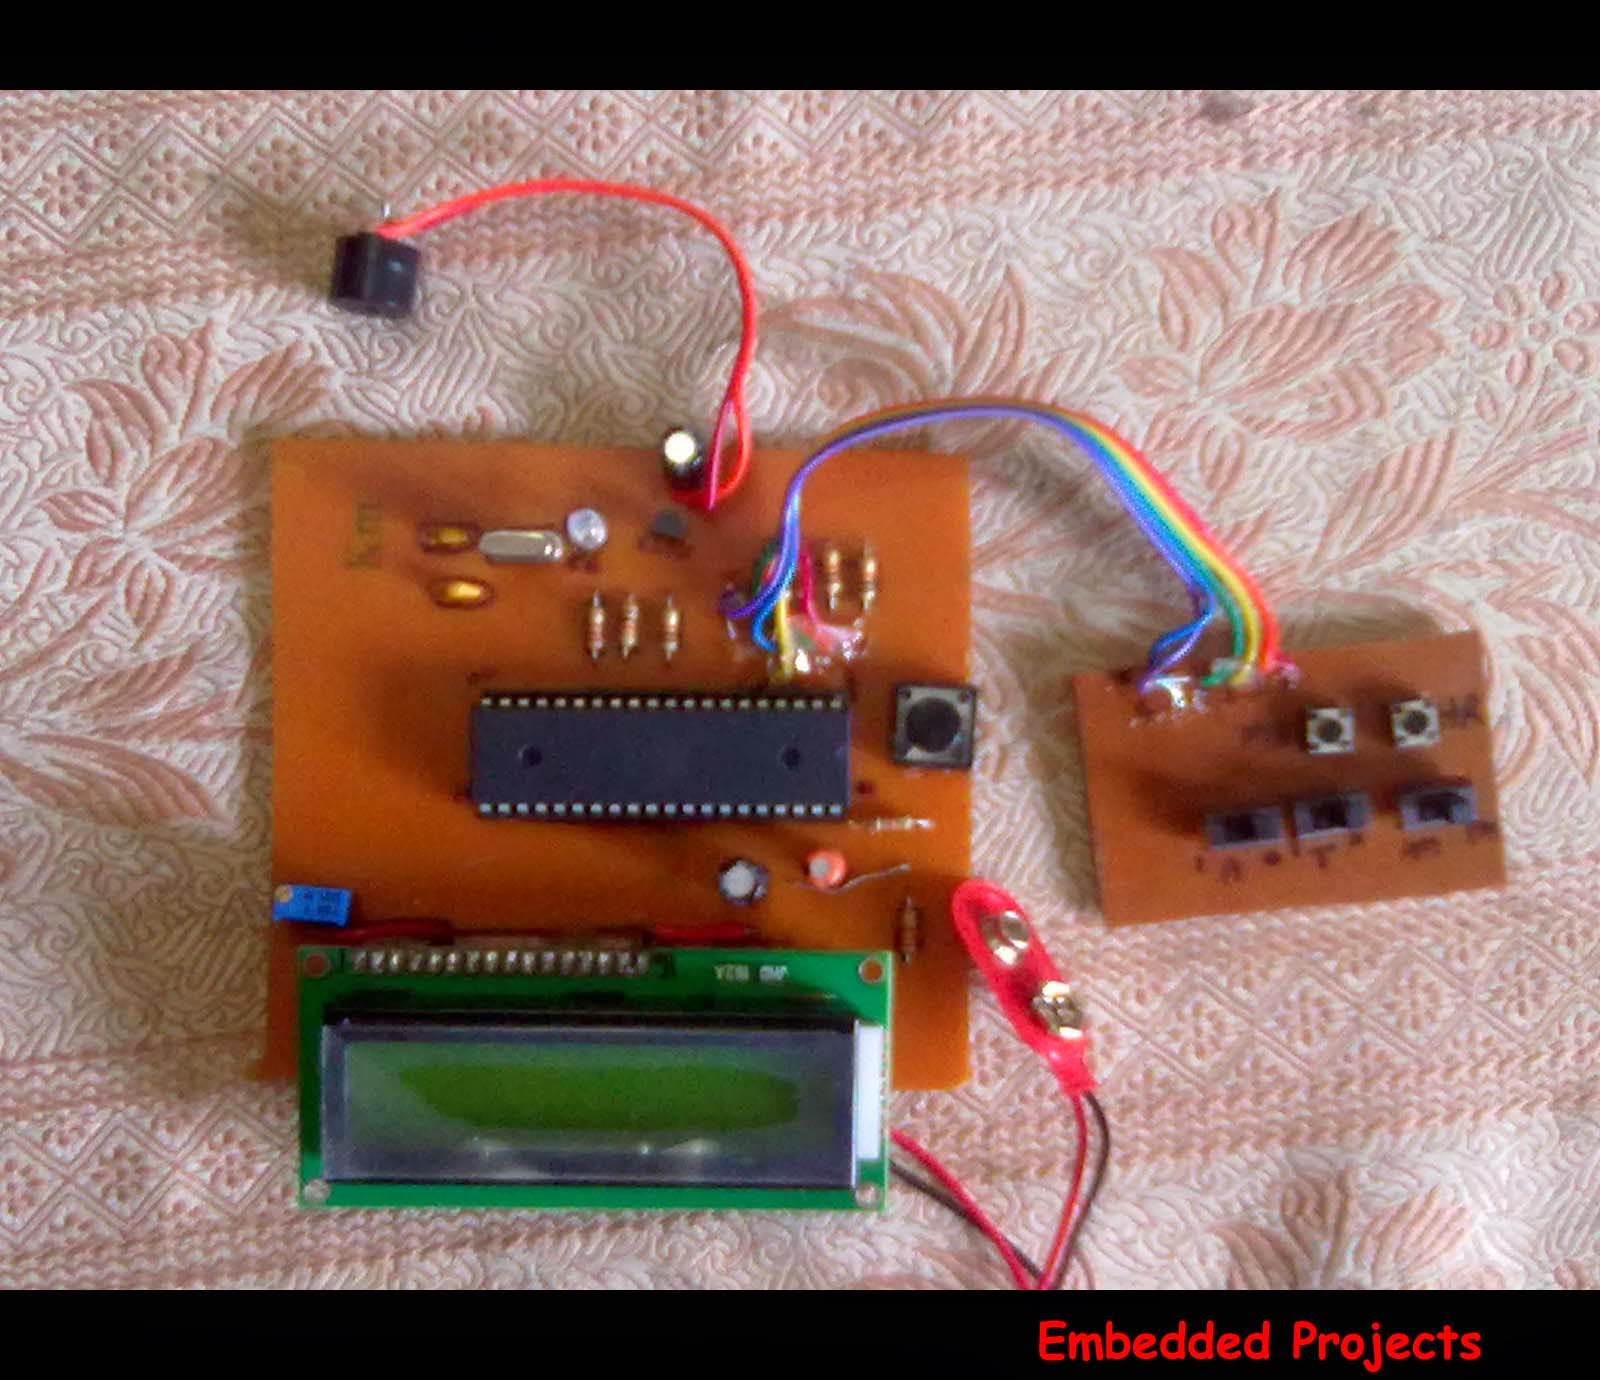 Lcd Based Digital Alarm Clock Using 89s51 Microcontroller Thermometer Circuit Ds18b20 Electronics Projects Circuits